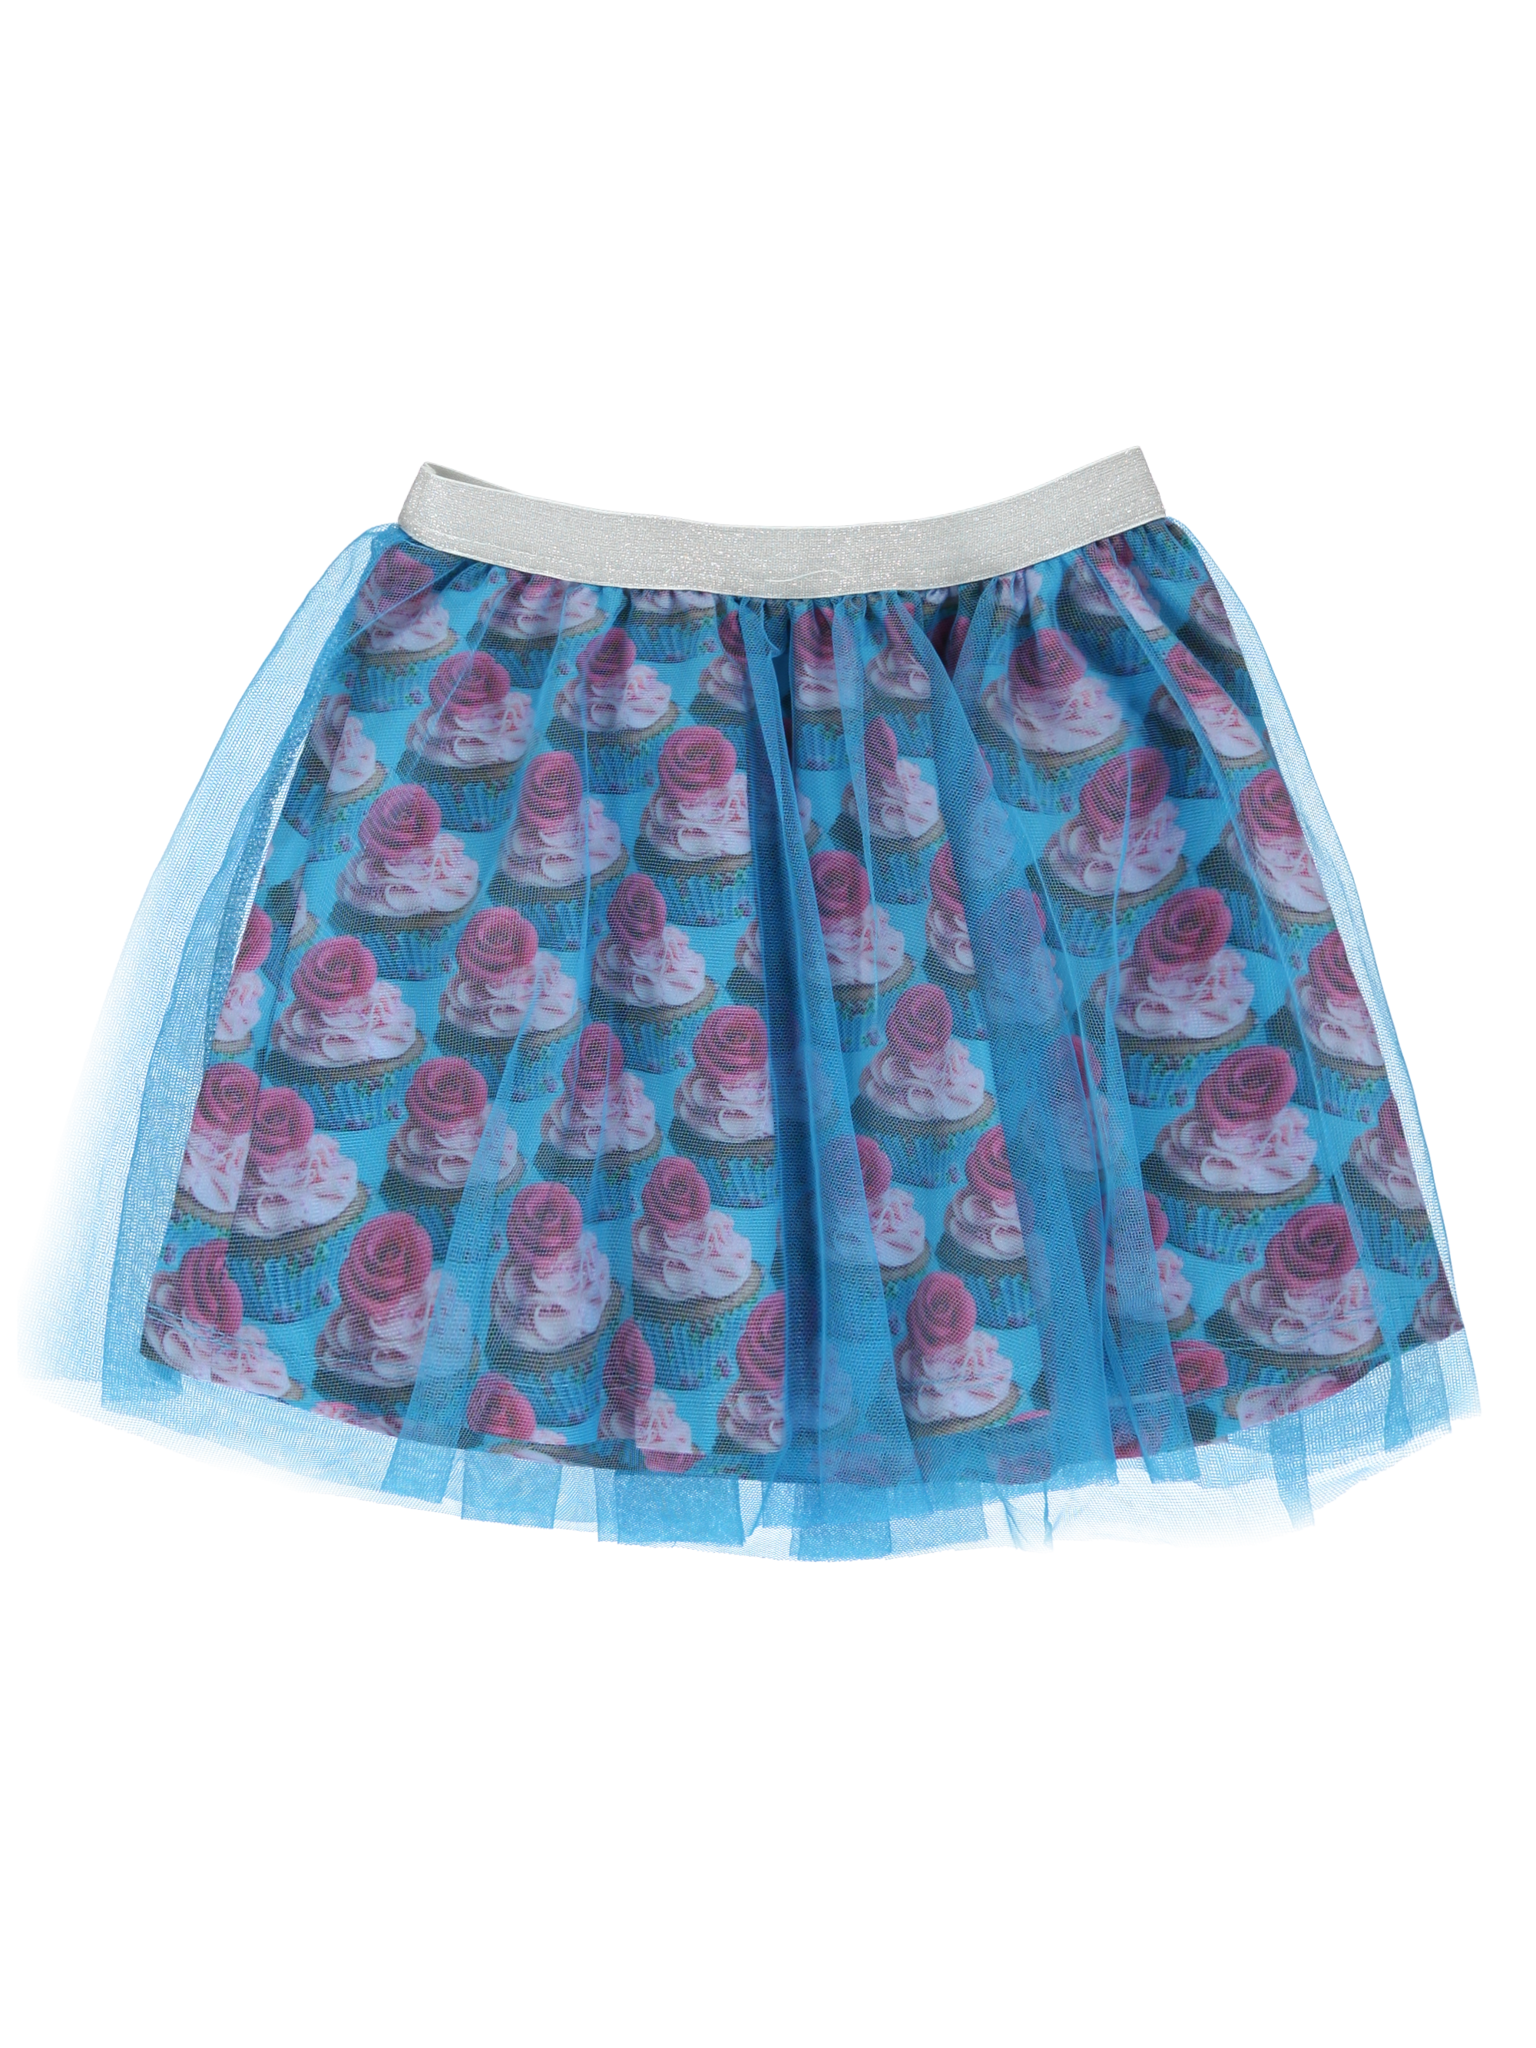 All Brands | Winterproducts Small Girls | Skirt | 20 pcs/box